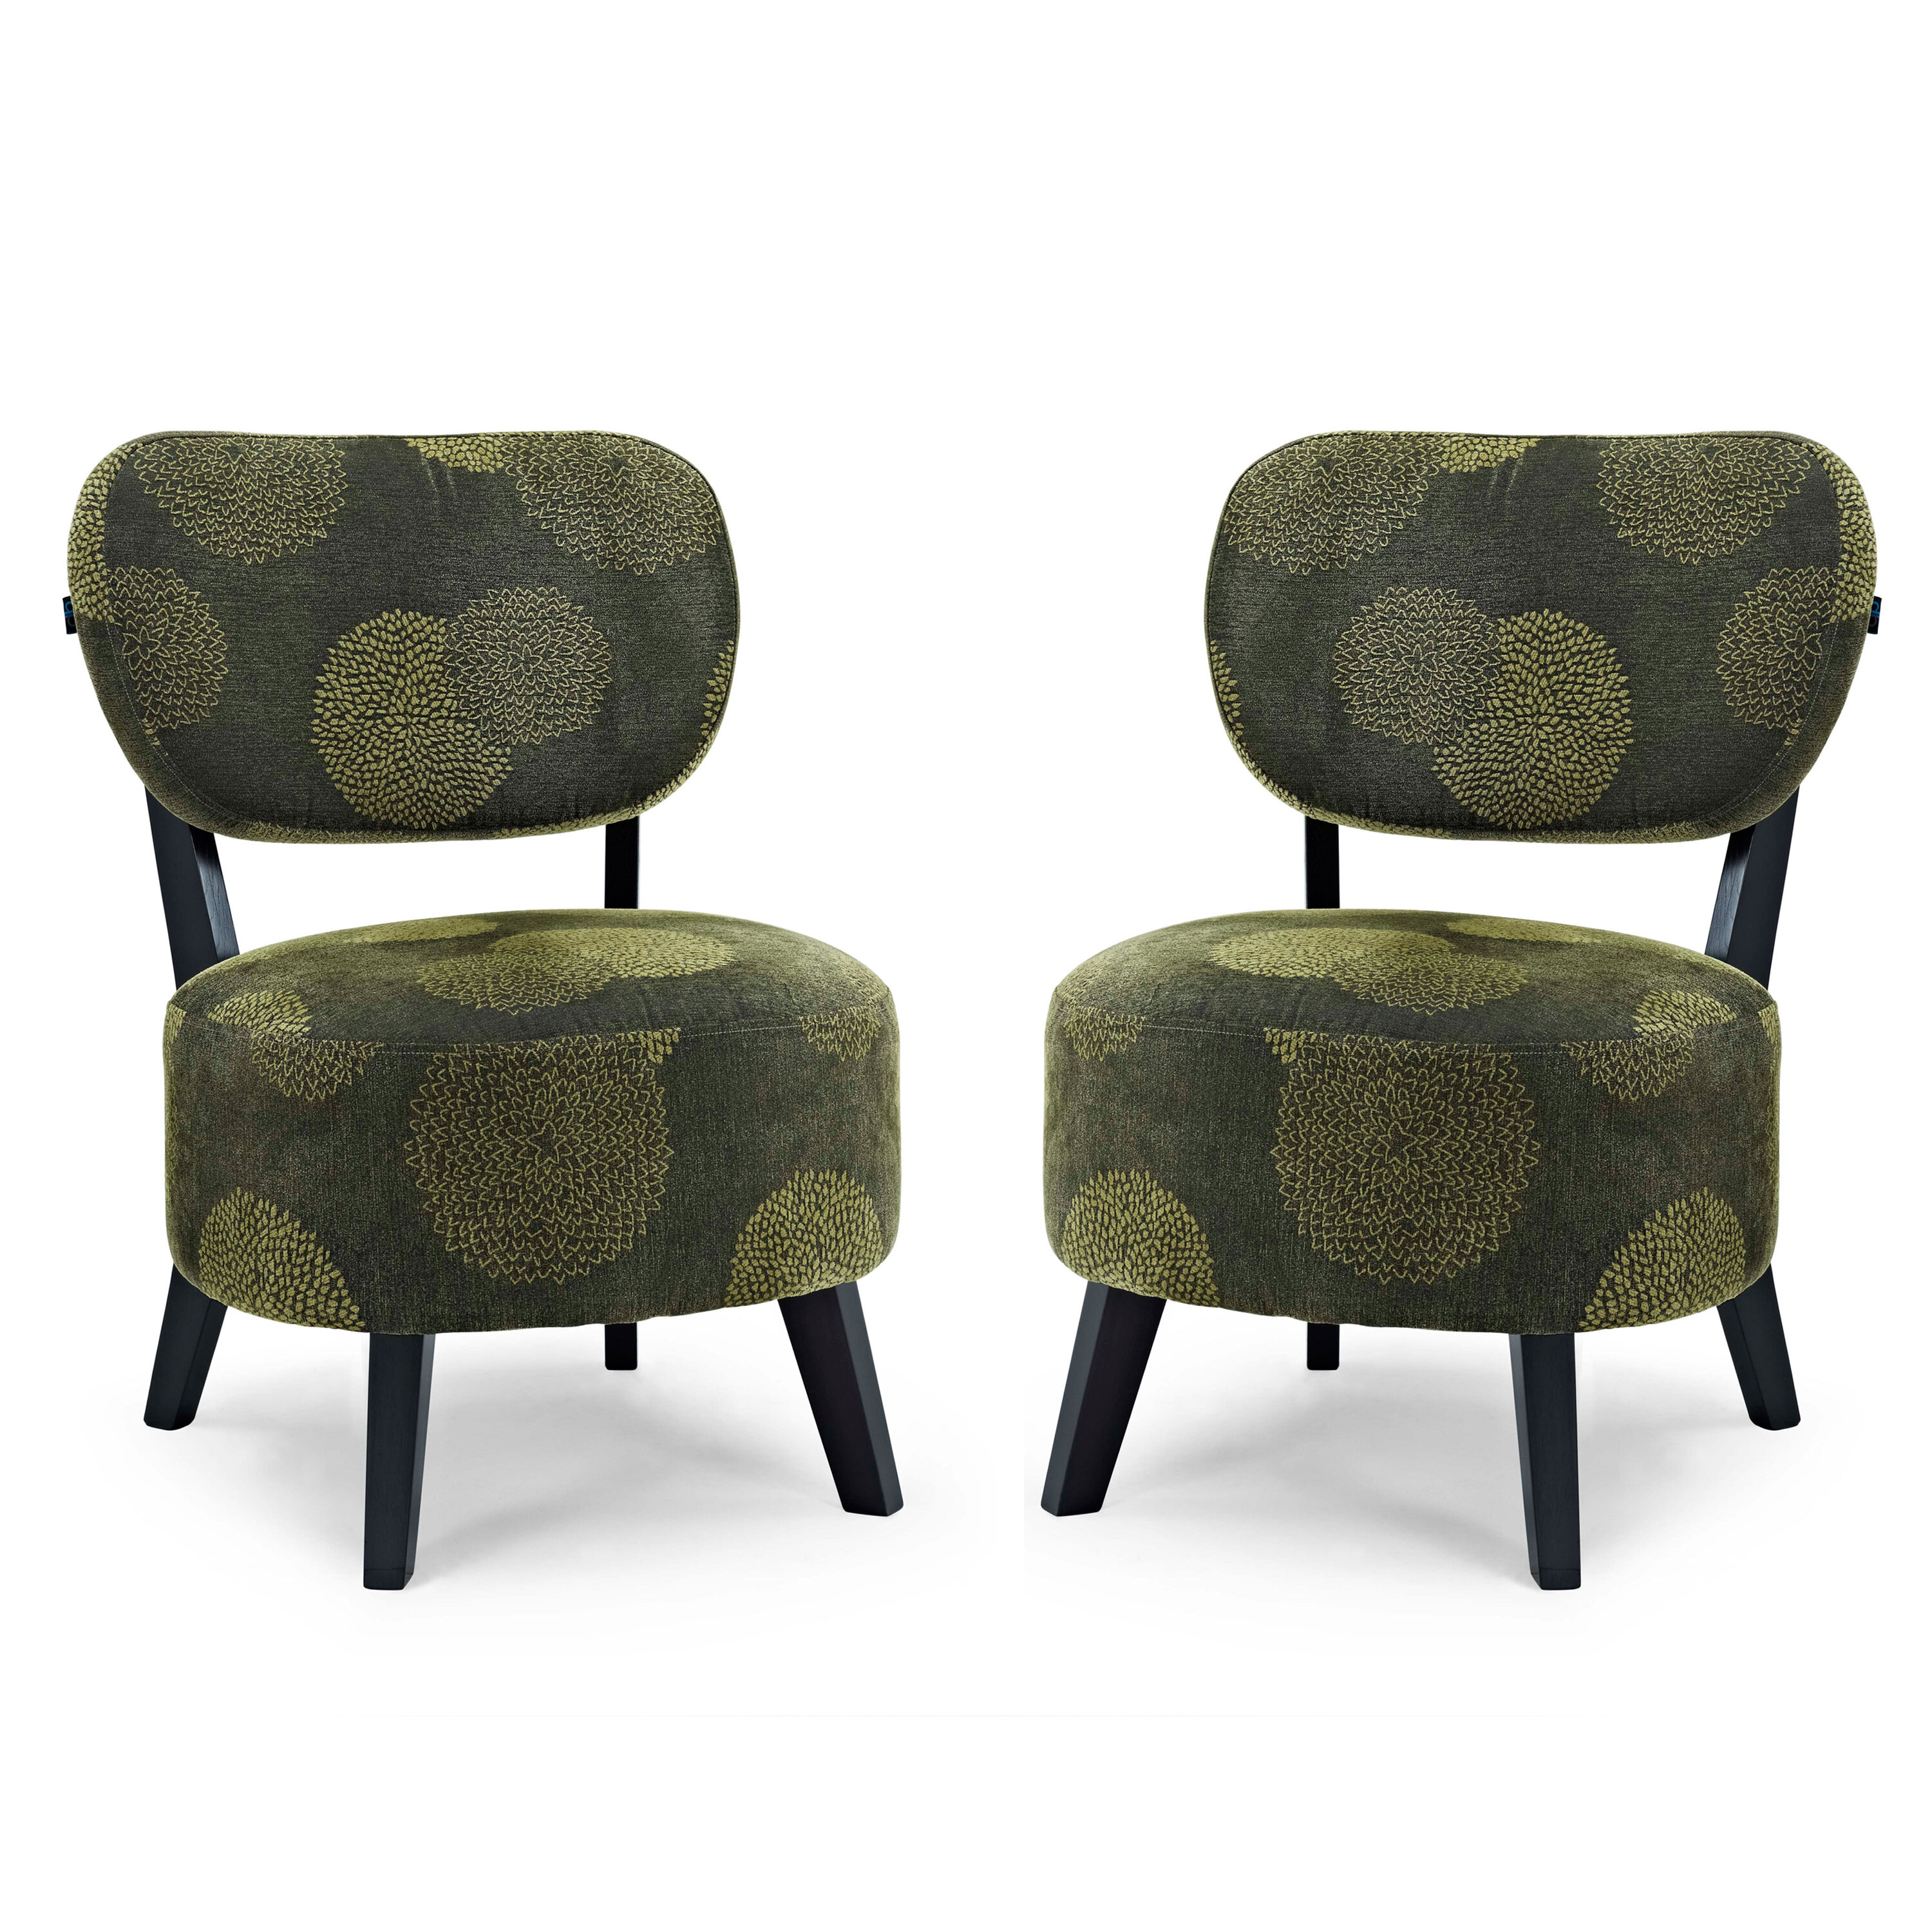 Astonishing Chair Set Accent Chairs Youll Love In 2019 Wayfair Download Free Architecture Designs Embacsunscenecom